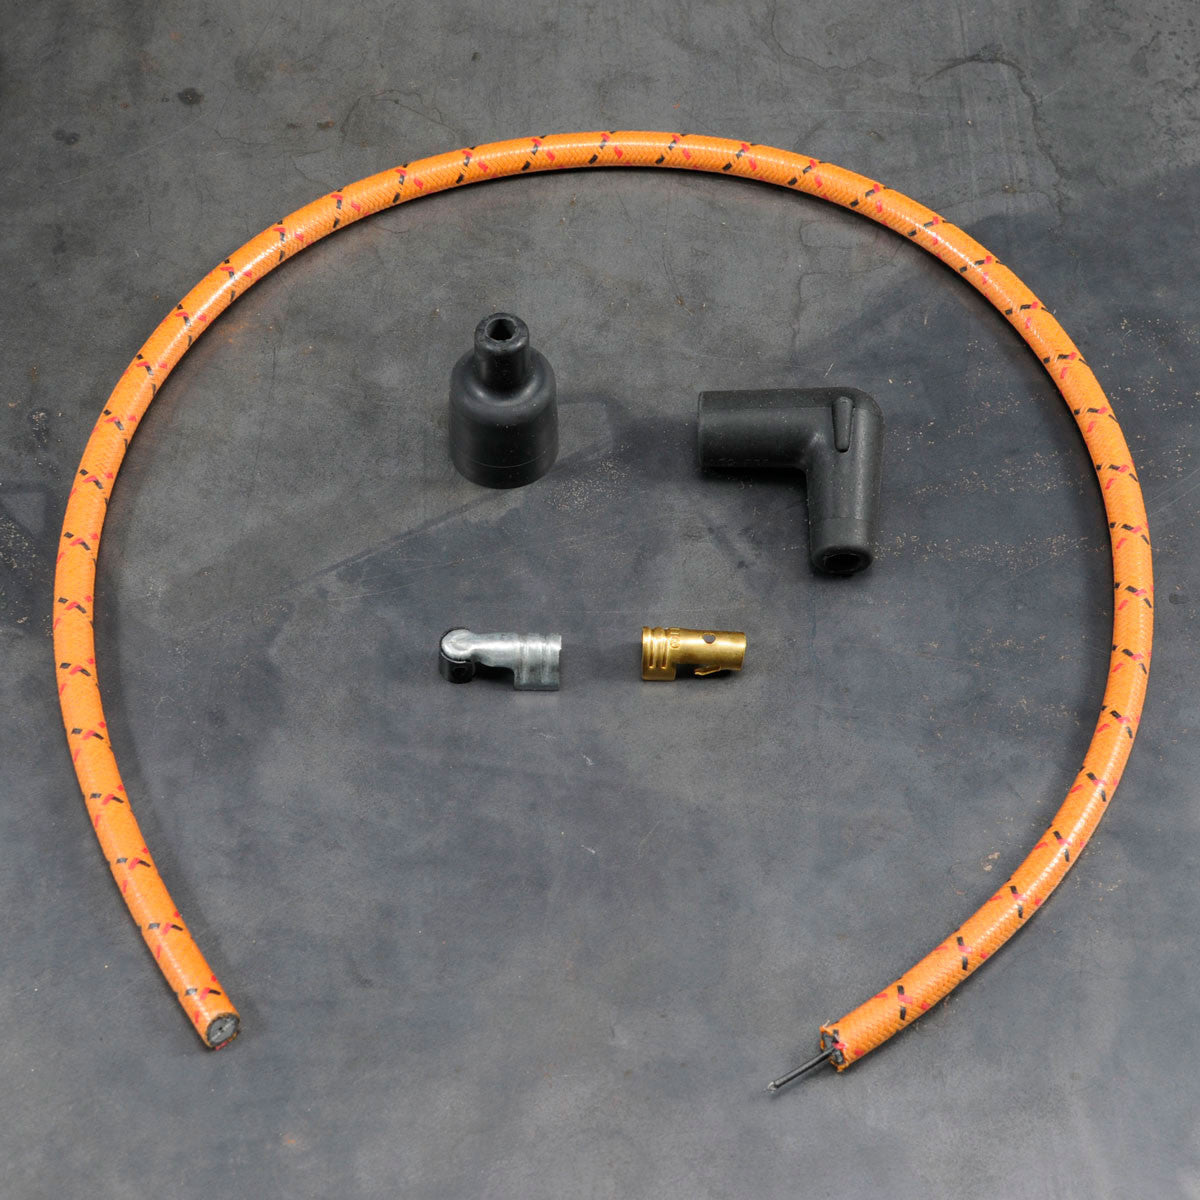 Zip Tie Spark Plug Wiring Harness Free Download Ties Revival Signature Wire Kit Car At